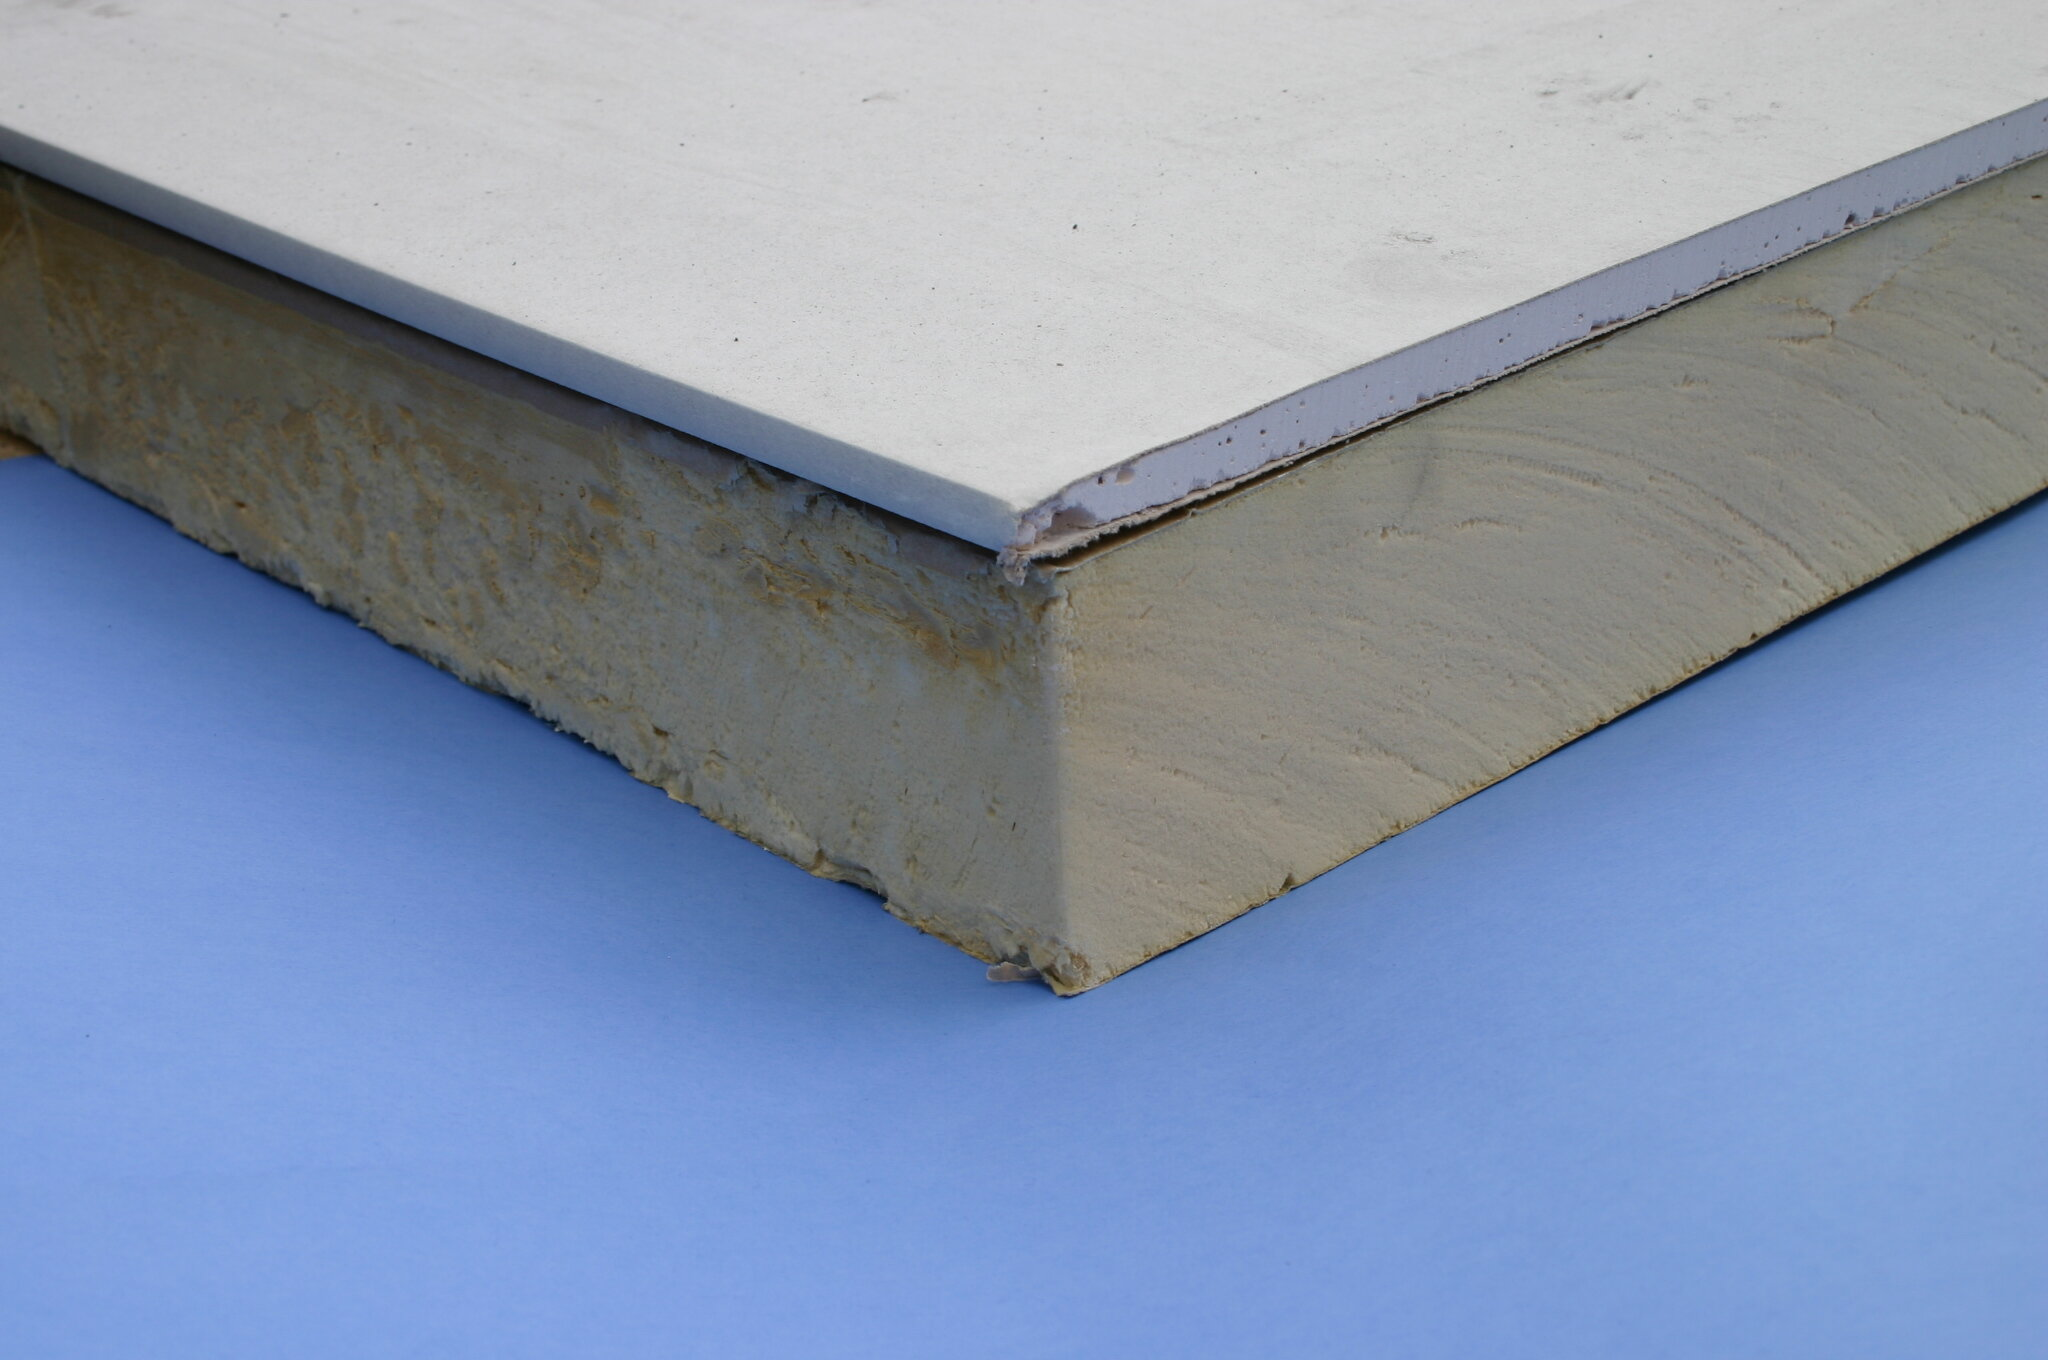 Xtratherm Insulated Plasterboard 93mm - 2400 x 1200mm (Mechanical Fixing)